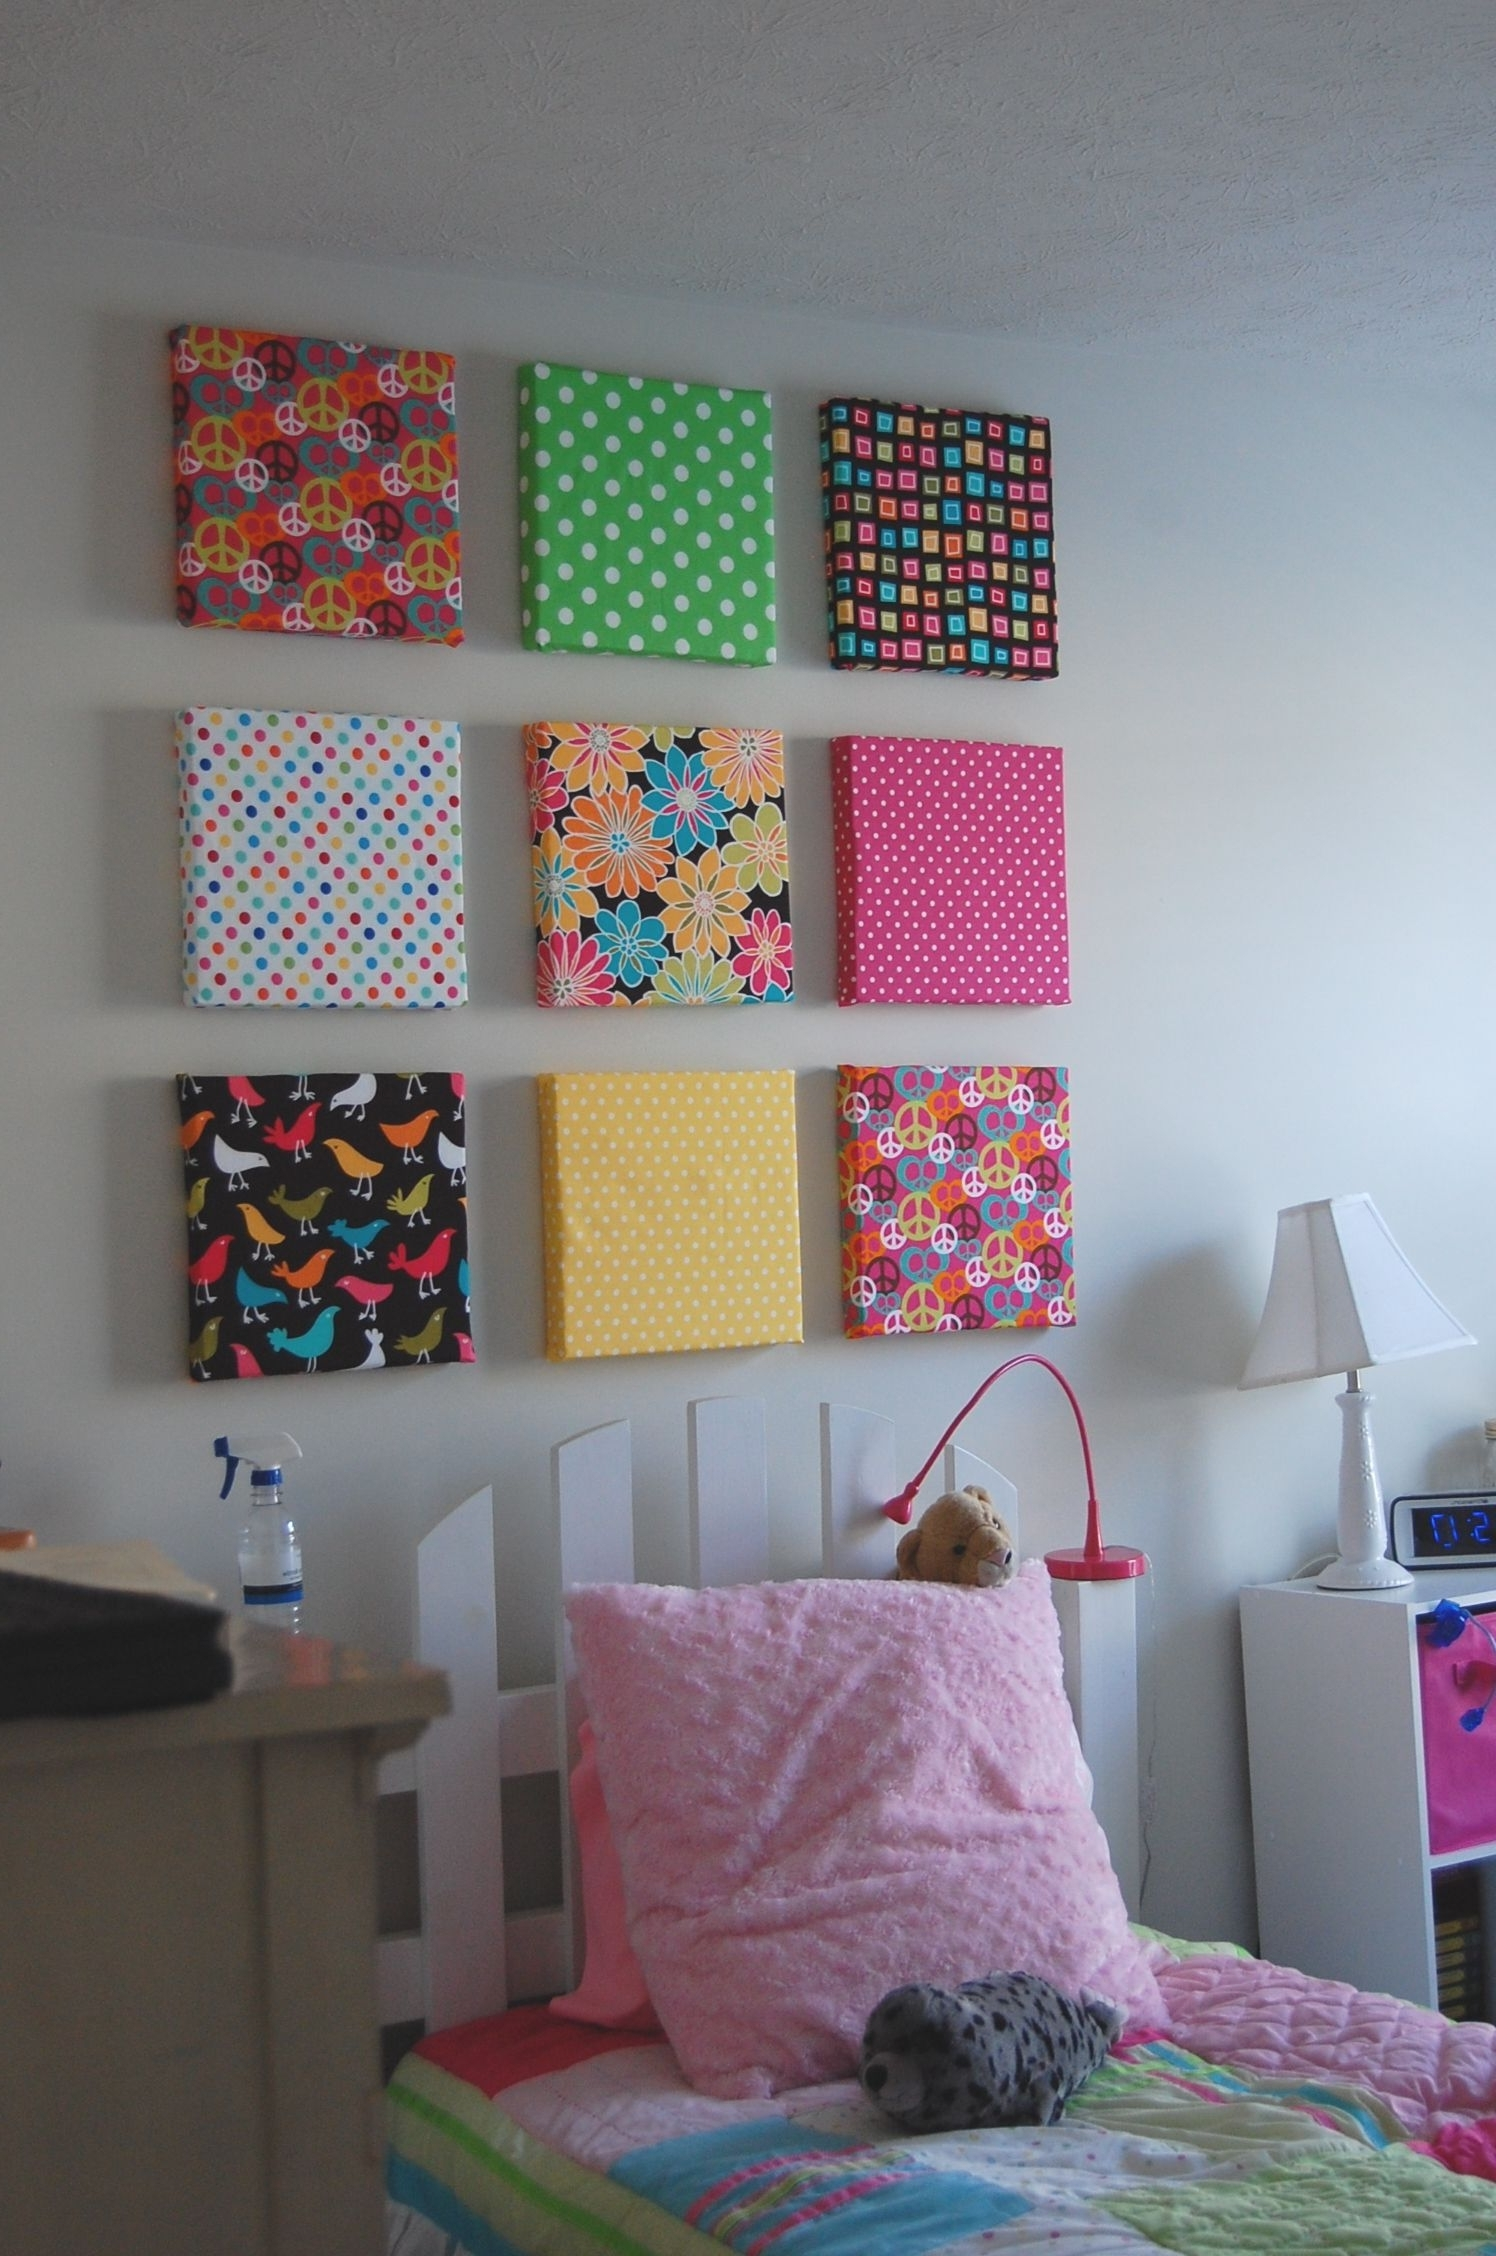 Widely Used Styrofoam Fabric Wall Art Inside Finally Finished My Daughter's Room (View 13 of 15)